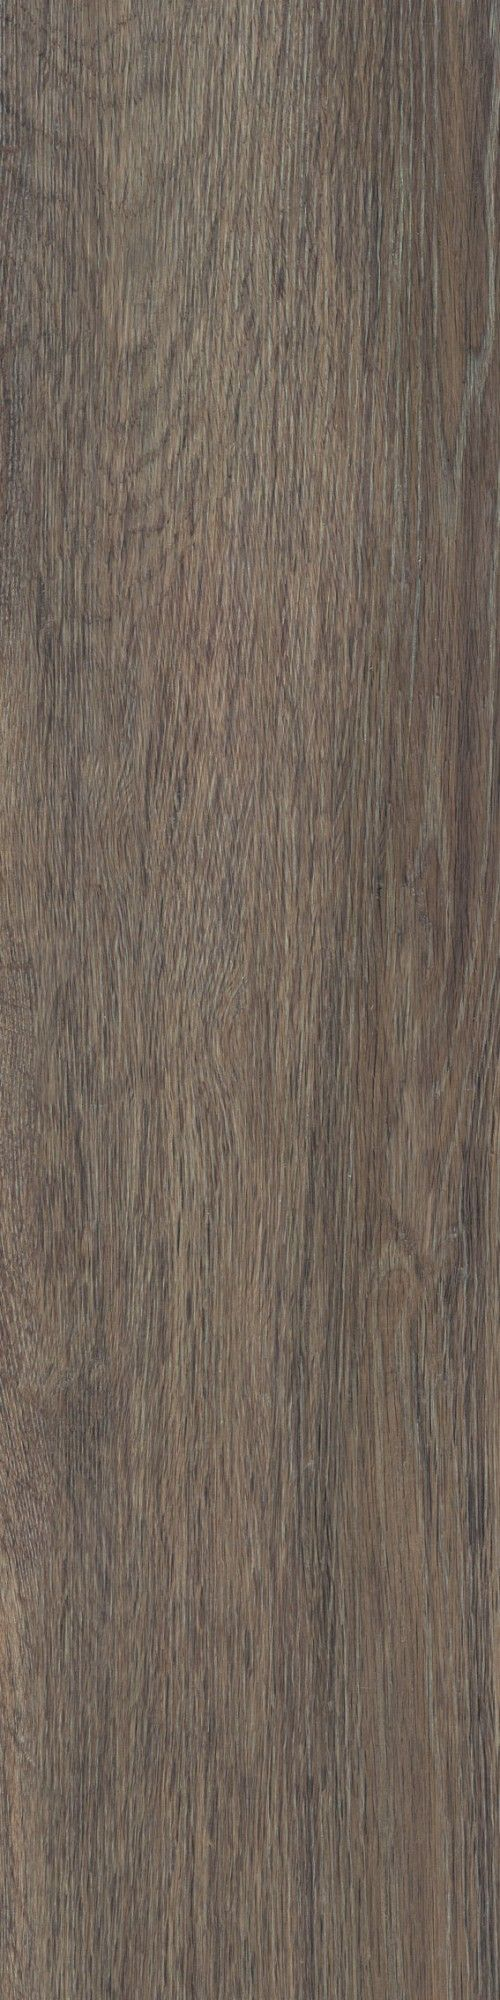 Best 25 wood grain tile ideas on pinterest porcelain wood tile campani legni vintage grey wood porcelain tile wood grain floor time for masculine guest bath dailygadgetfo Choice Image